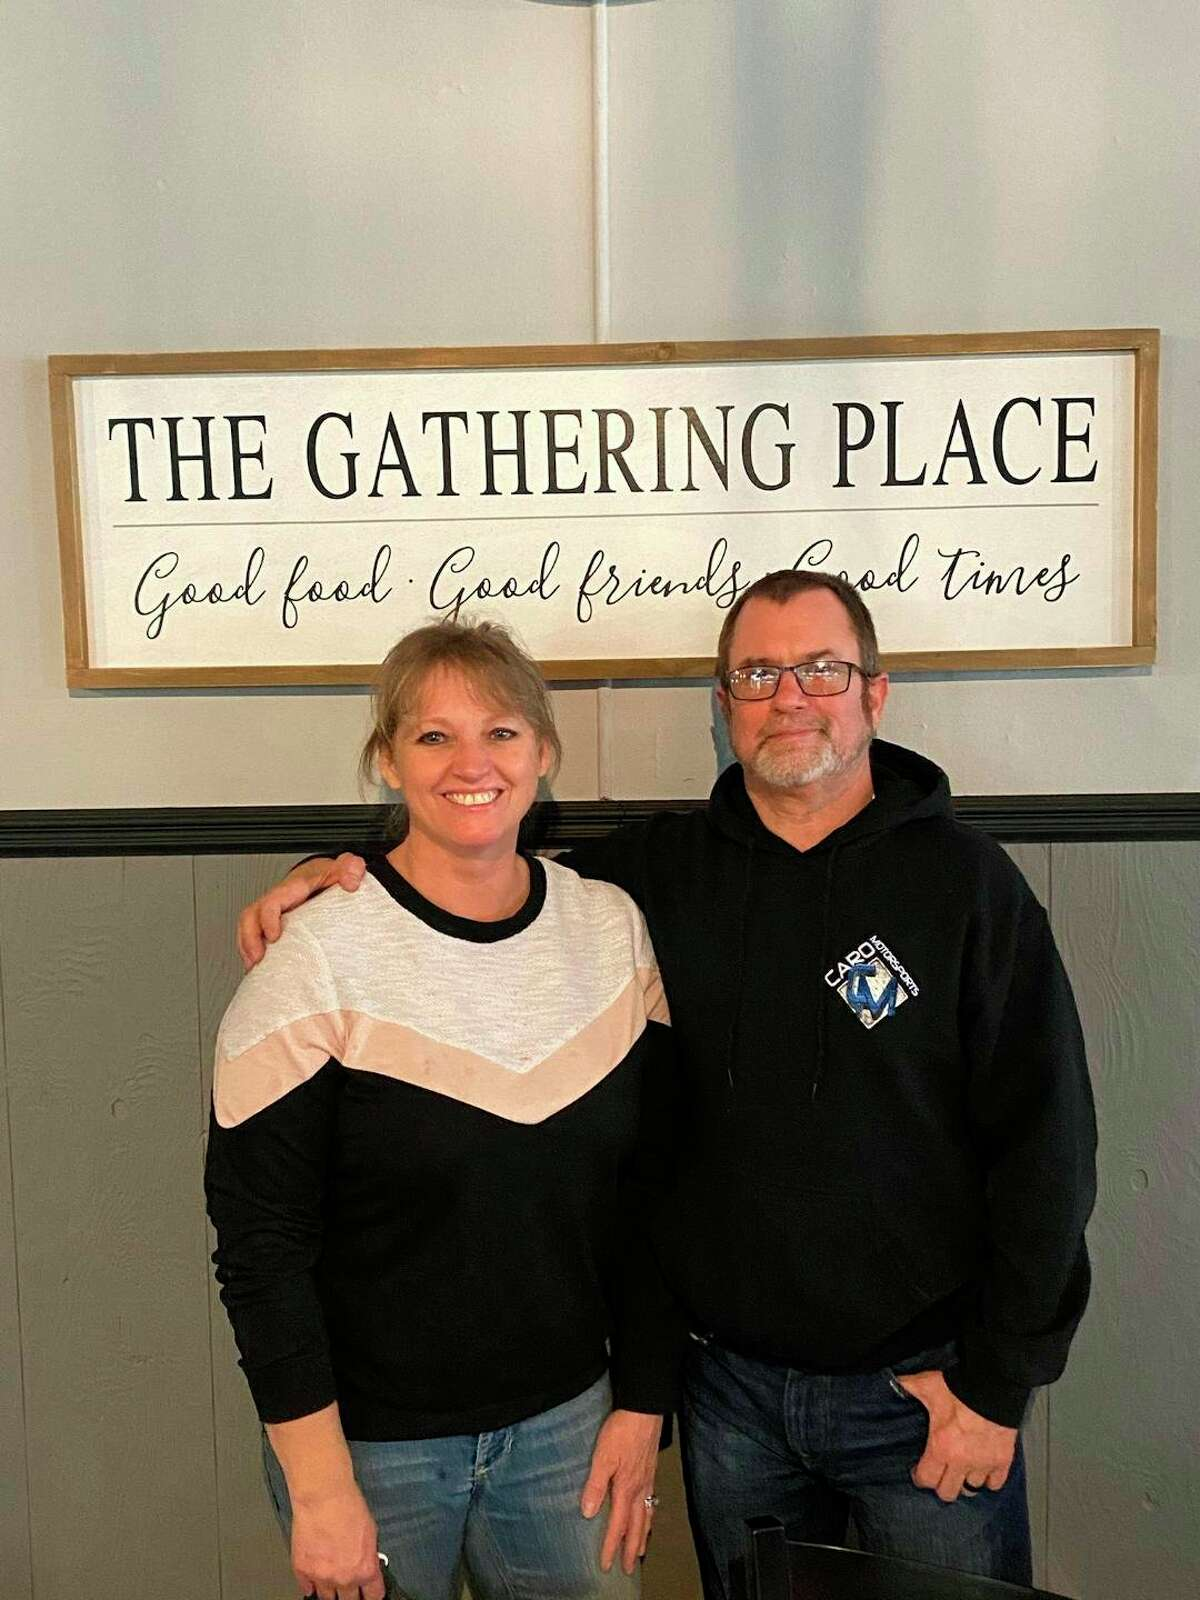 Lisa and Brian Enos are leasing the Oasis Tavern in downtown Caro with an option to buy. They made a few basic changes and improvements, but overall the 1900s ambiance of the place remains the same. (Courtesy Photo)